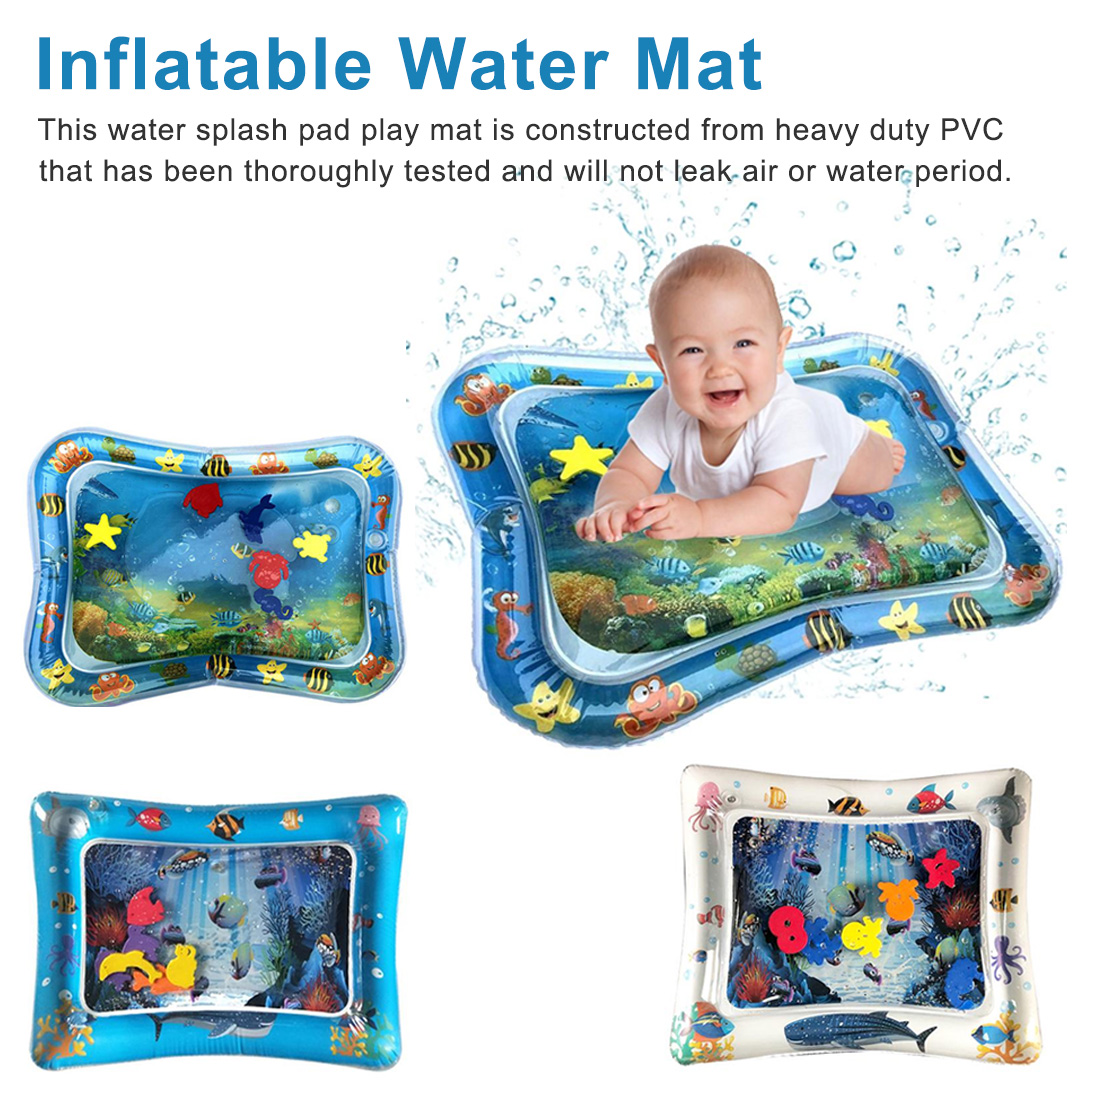 1pcs Inflatable Baby Water Mat Infant Tummy Time Play Mat Toddler Fun Activity Play Center For Sensory Stimulation Motor Skills